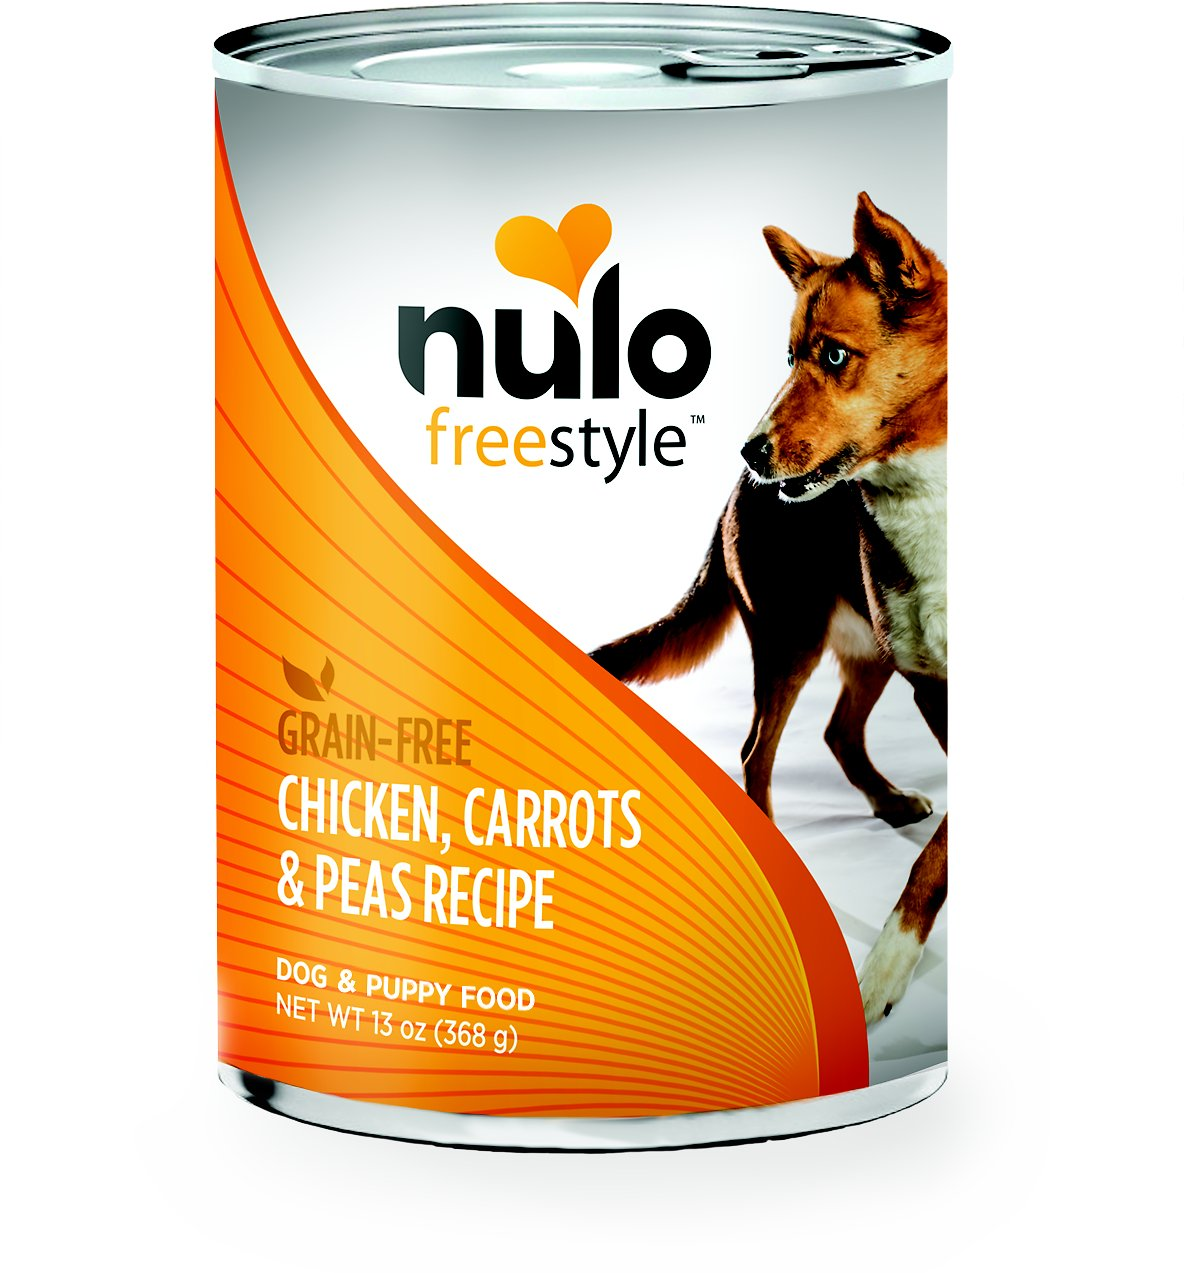 Nulo Dog Freestyle Pate Chicken, Carrots & Peas Recipe Grain-Free Canned Dog Food Image